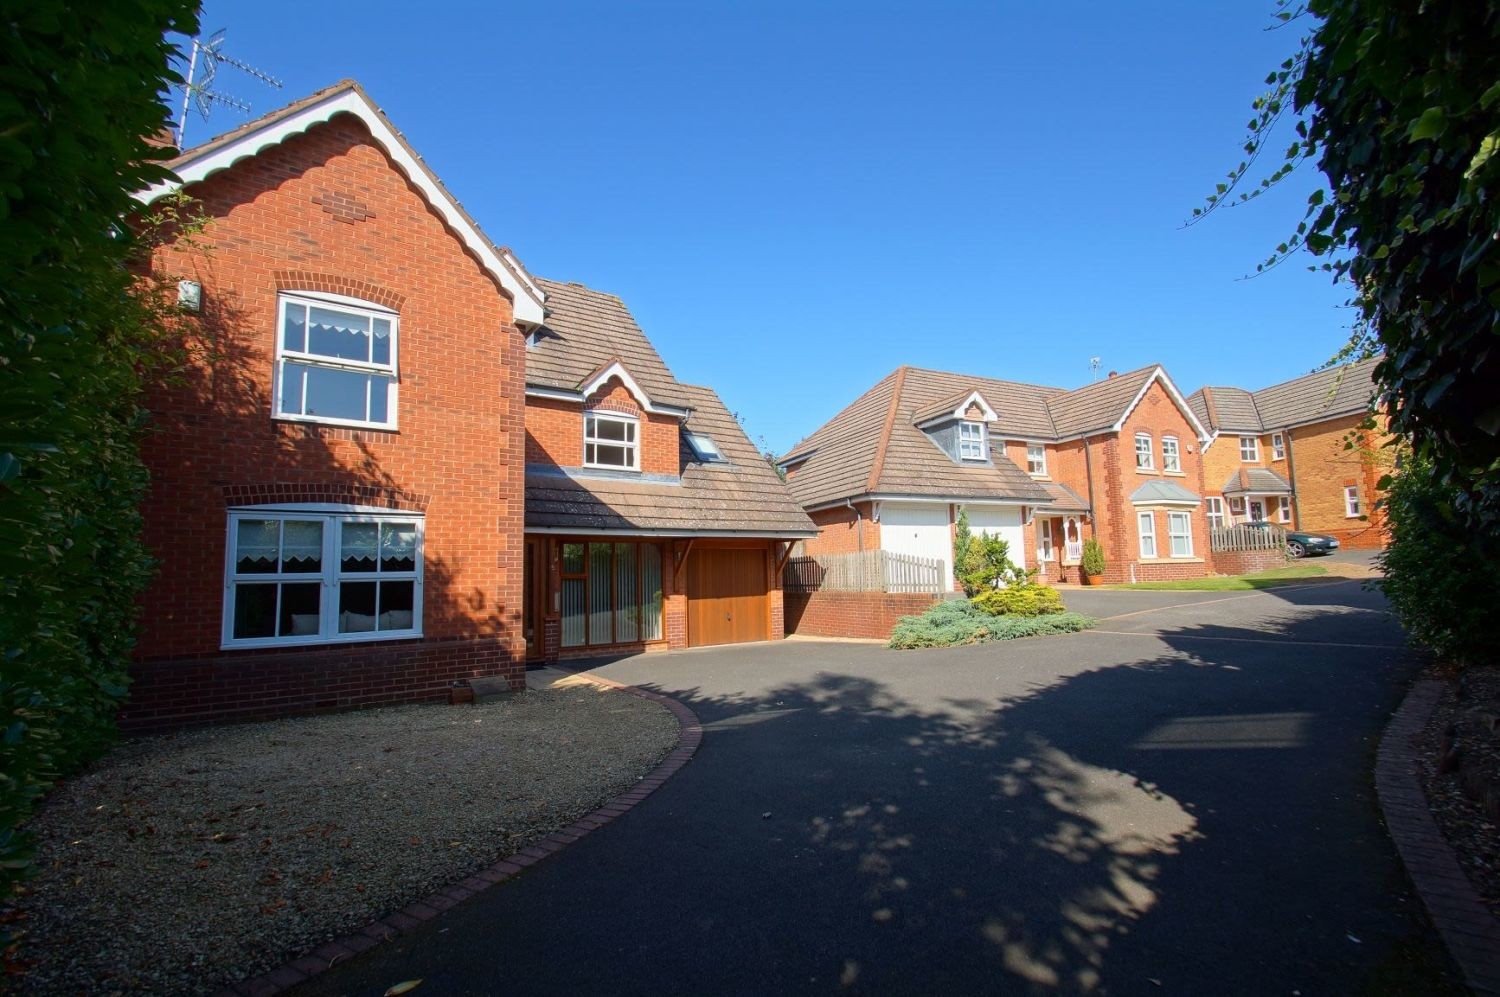 4 bed detached for sale in Acre Lane, Webheath 2